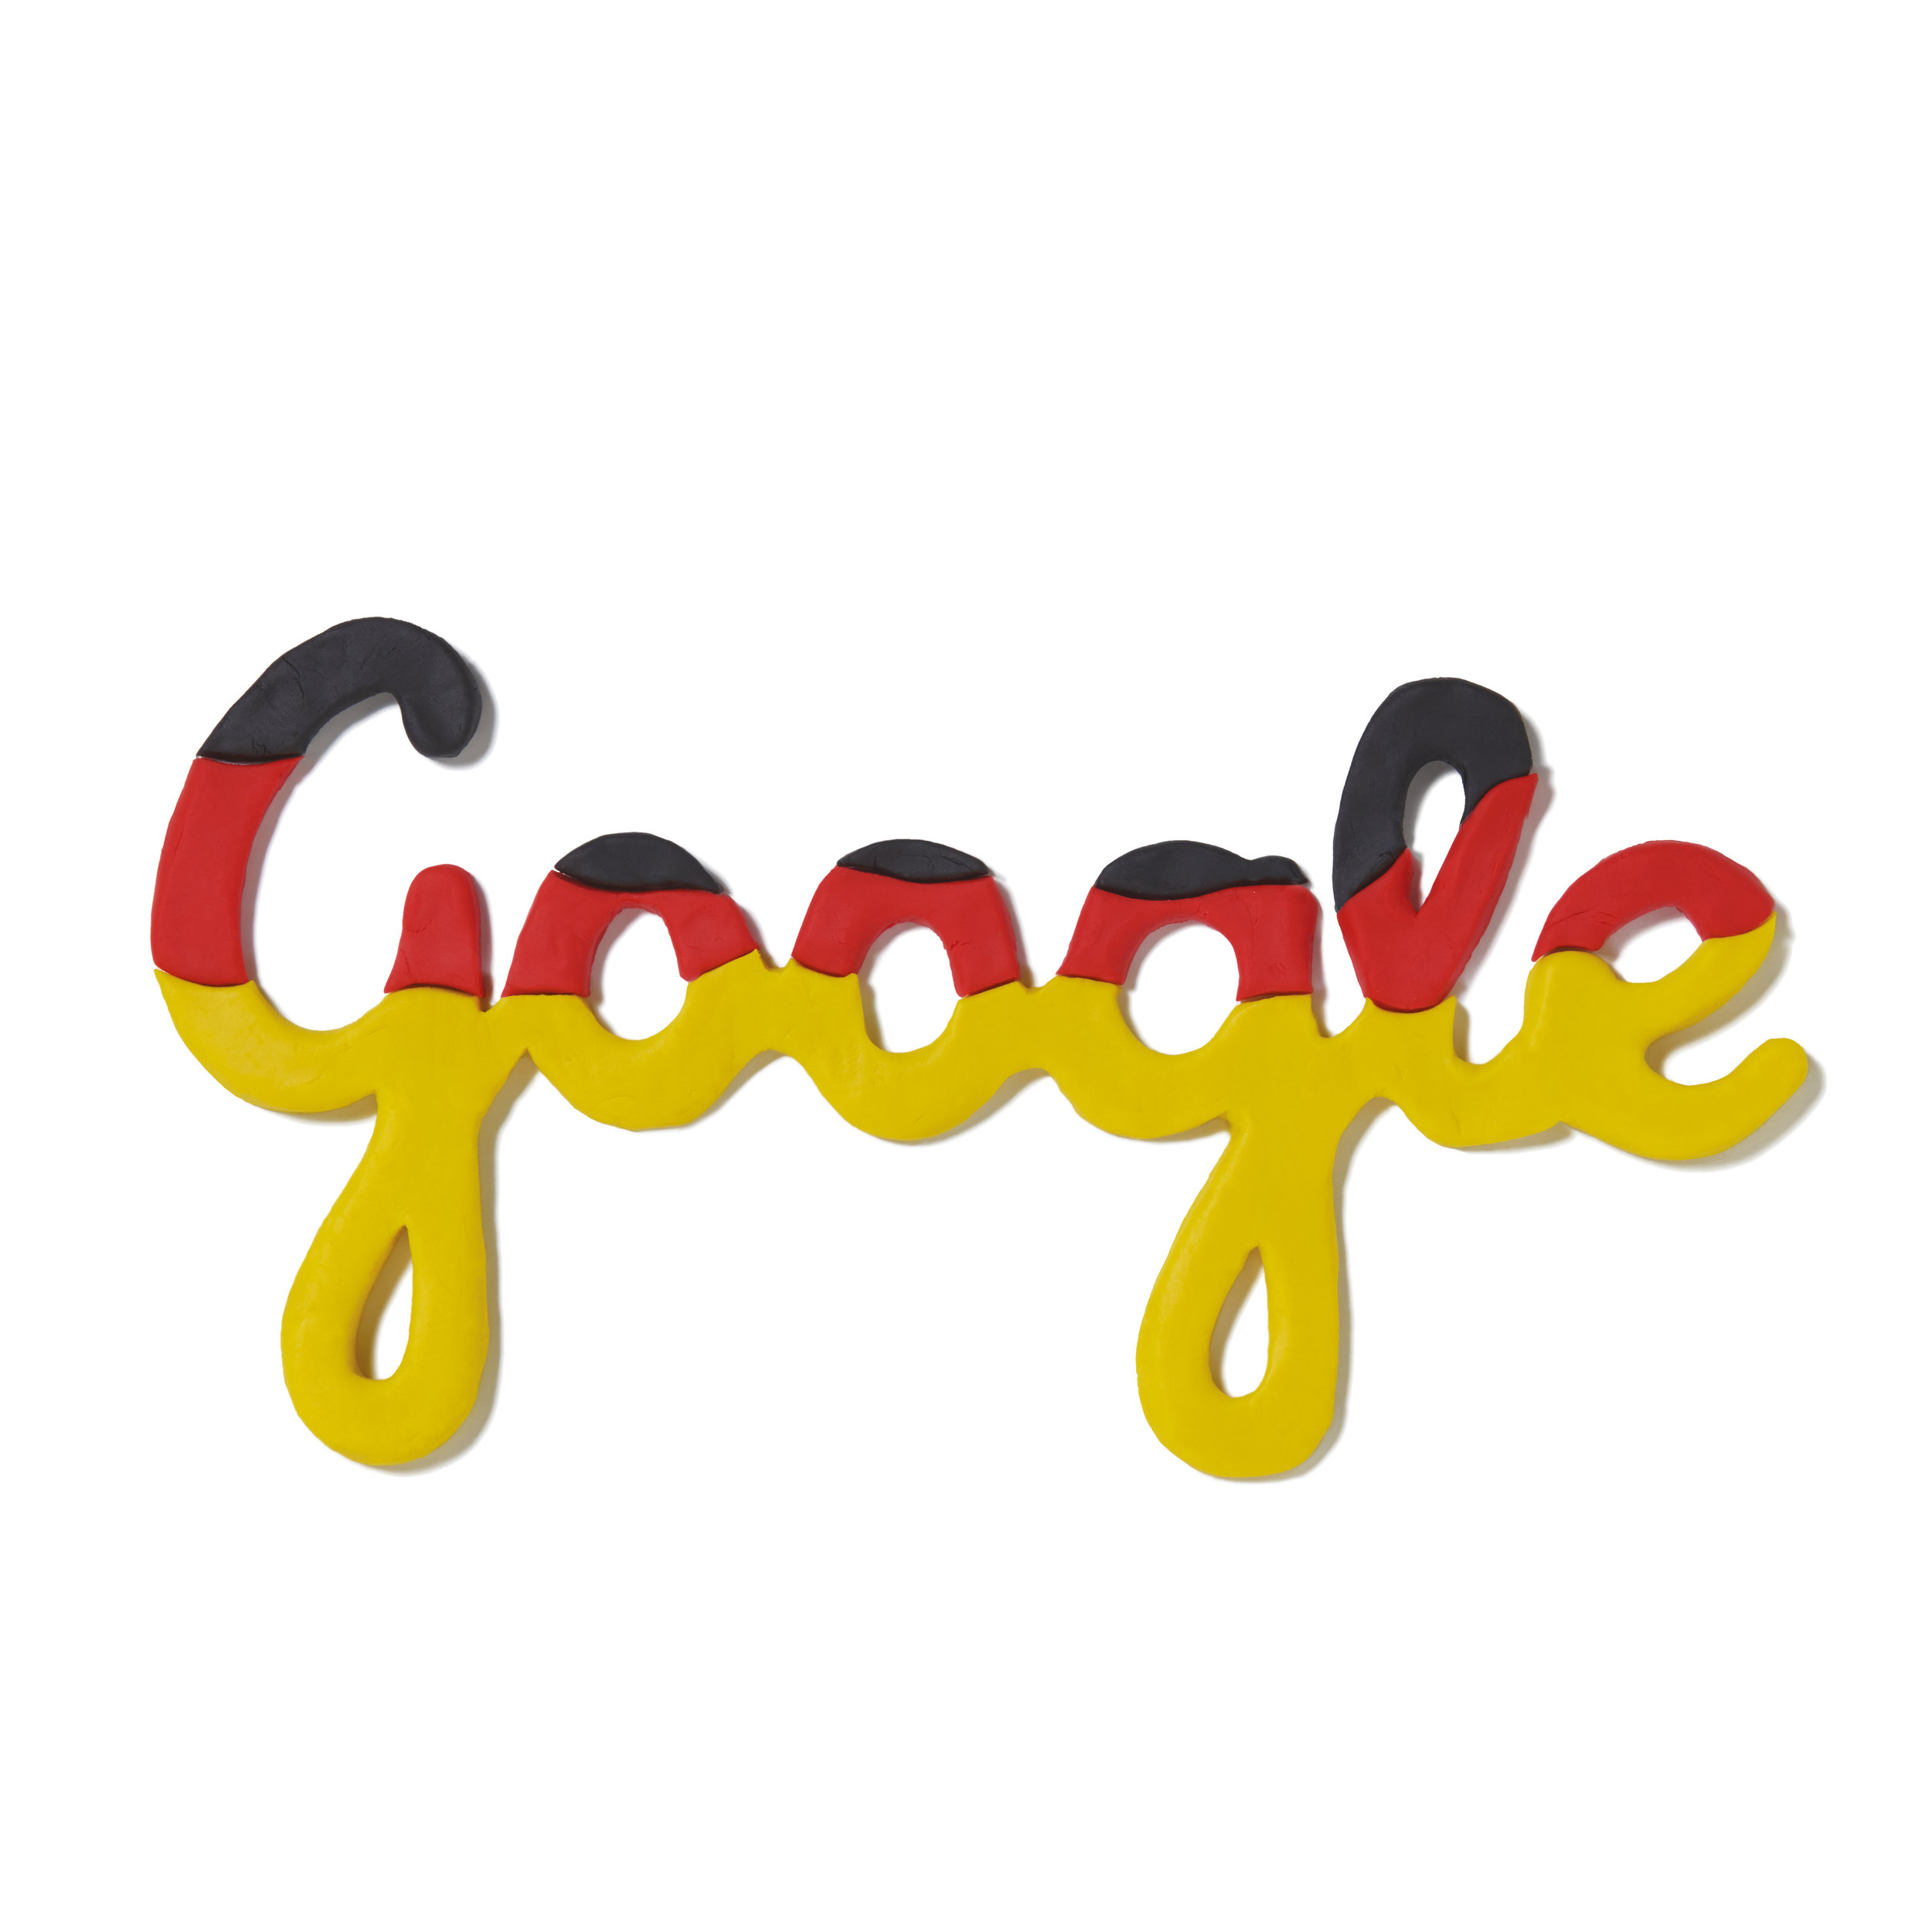 Google - Doodle — WRK / Tactile Illustrations & Paper Art